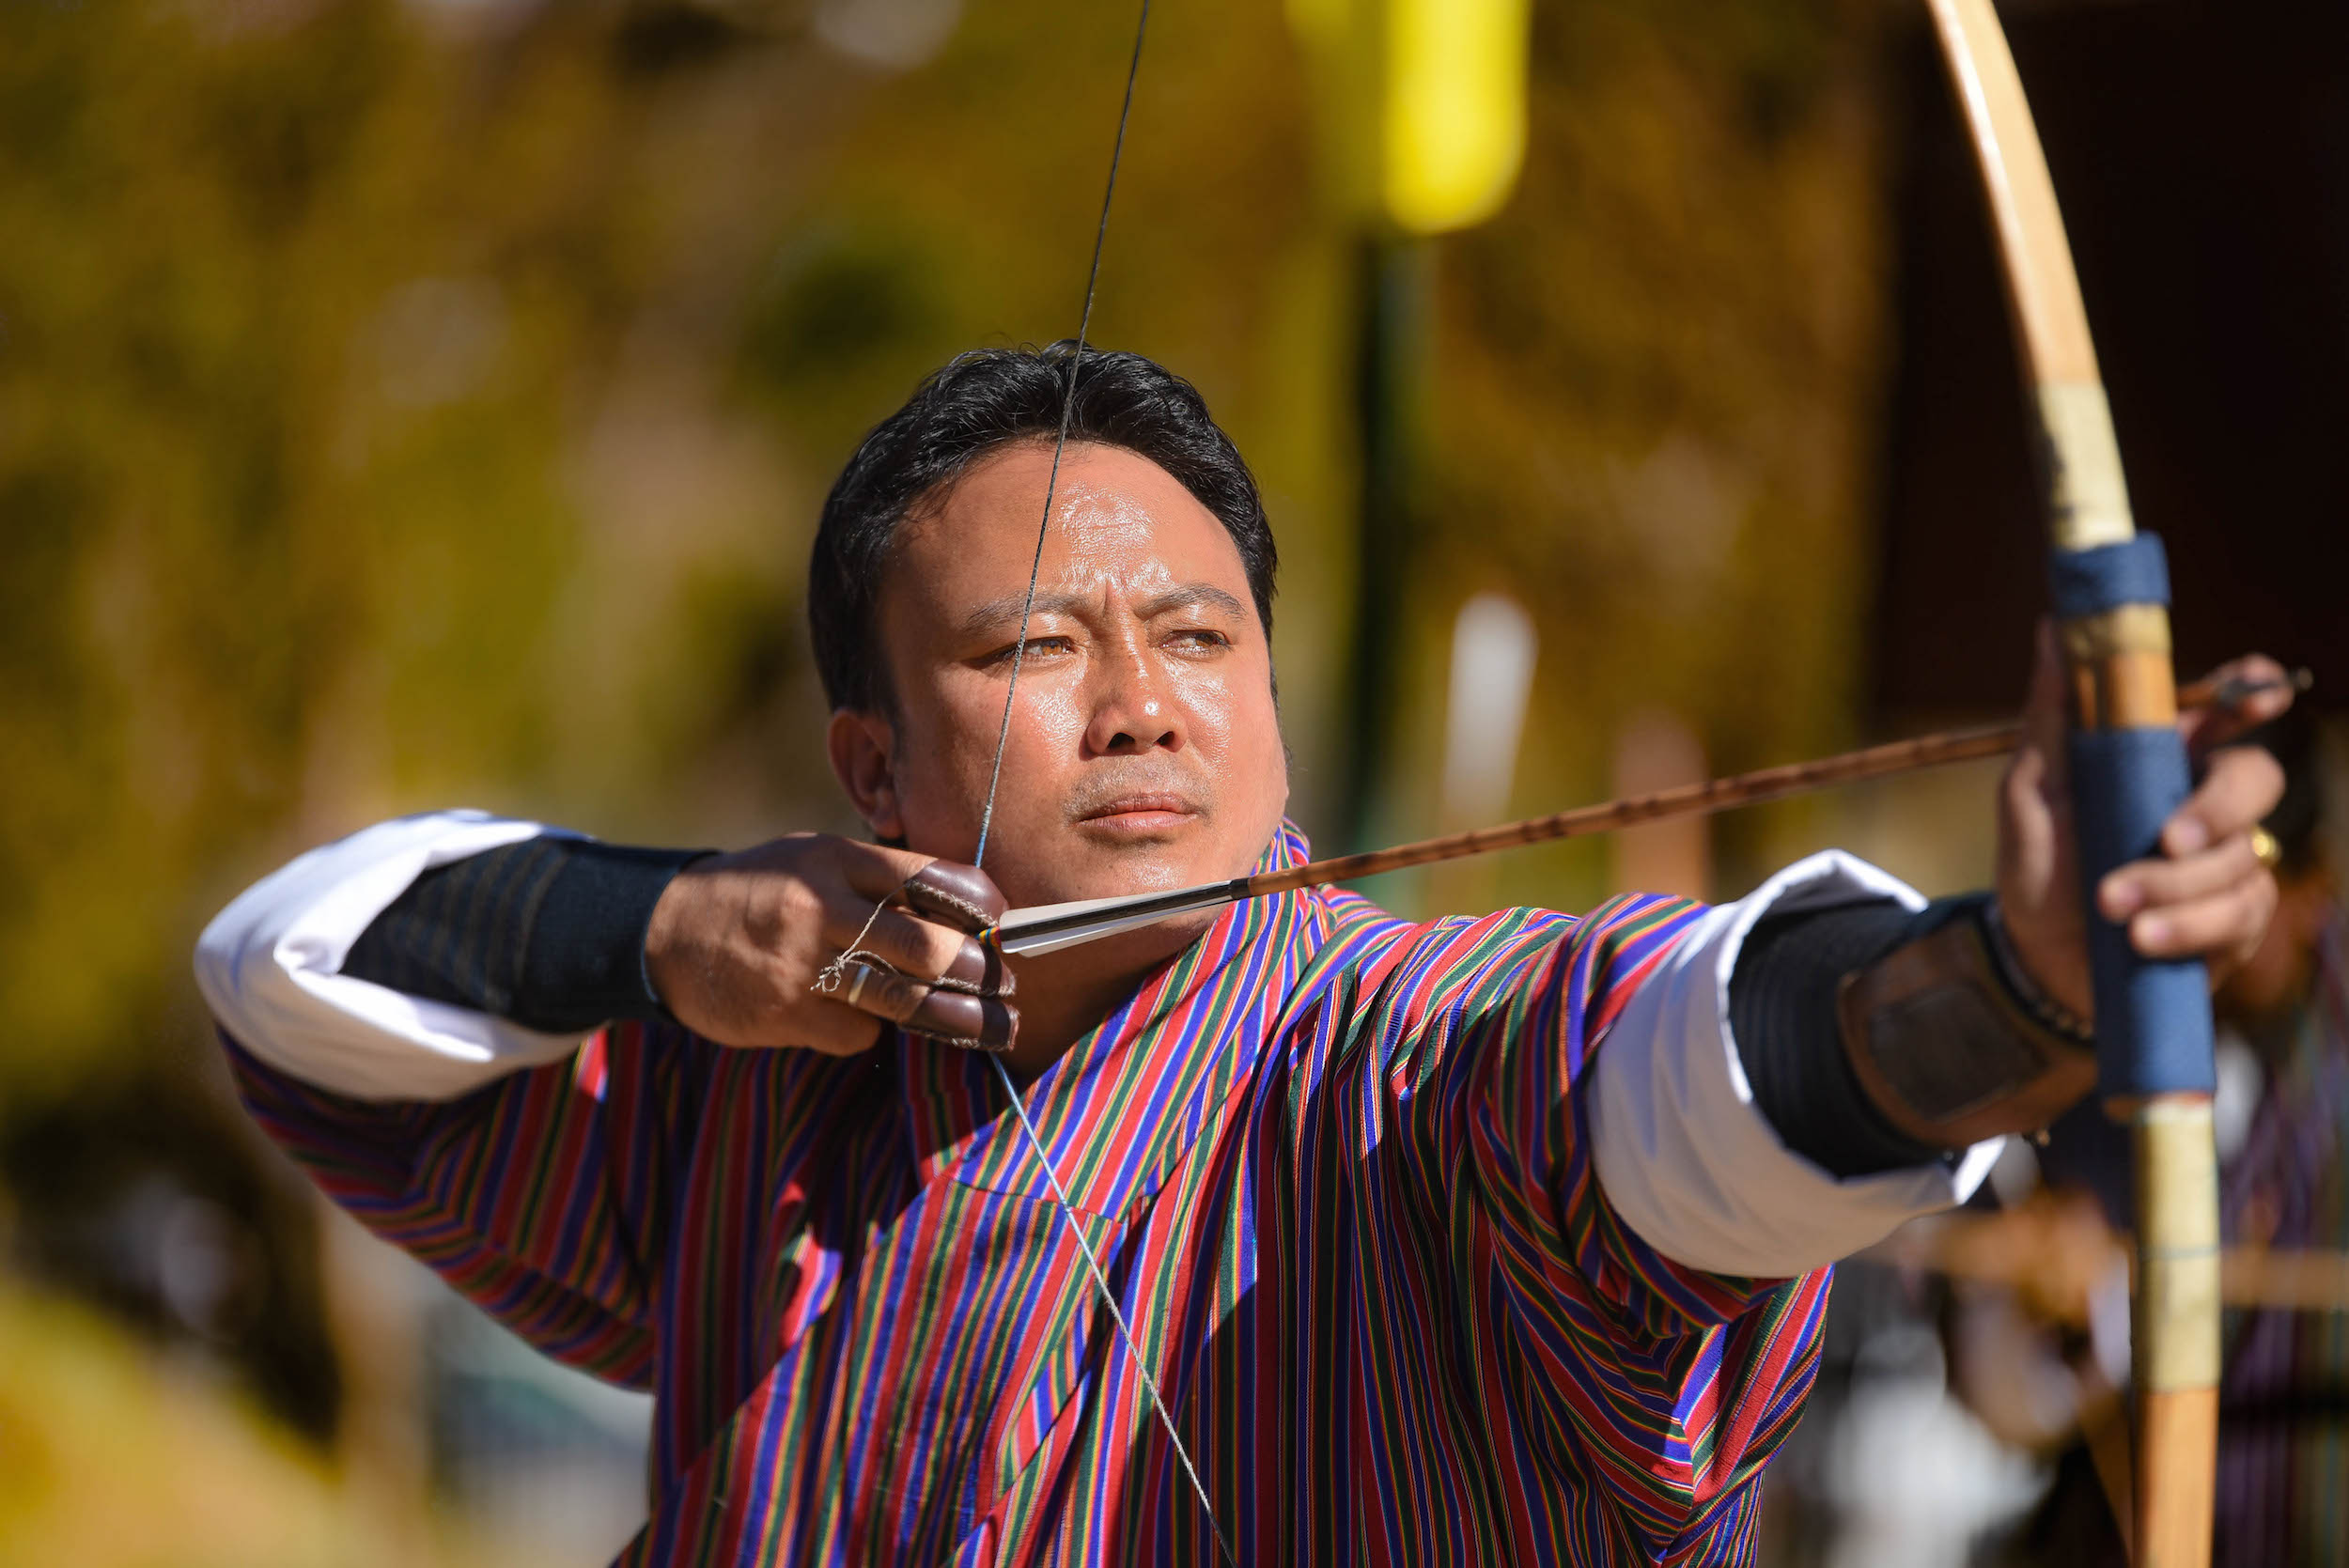 Man in traditional striped Bhutanese dress holding a bow and arrow, ready to fire.